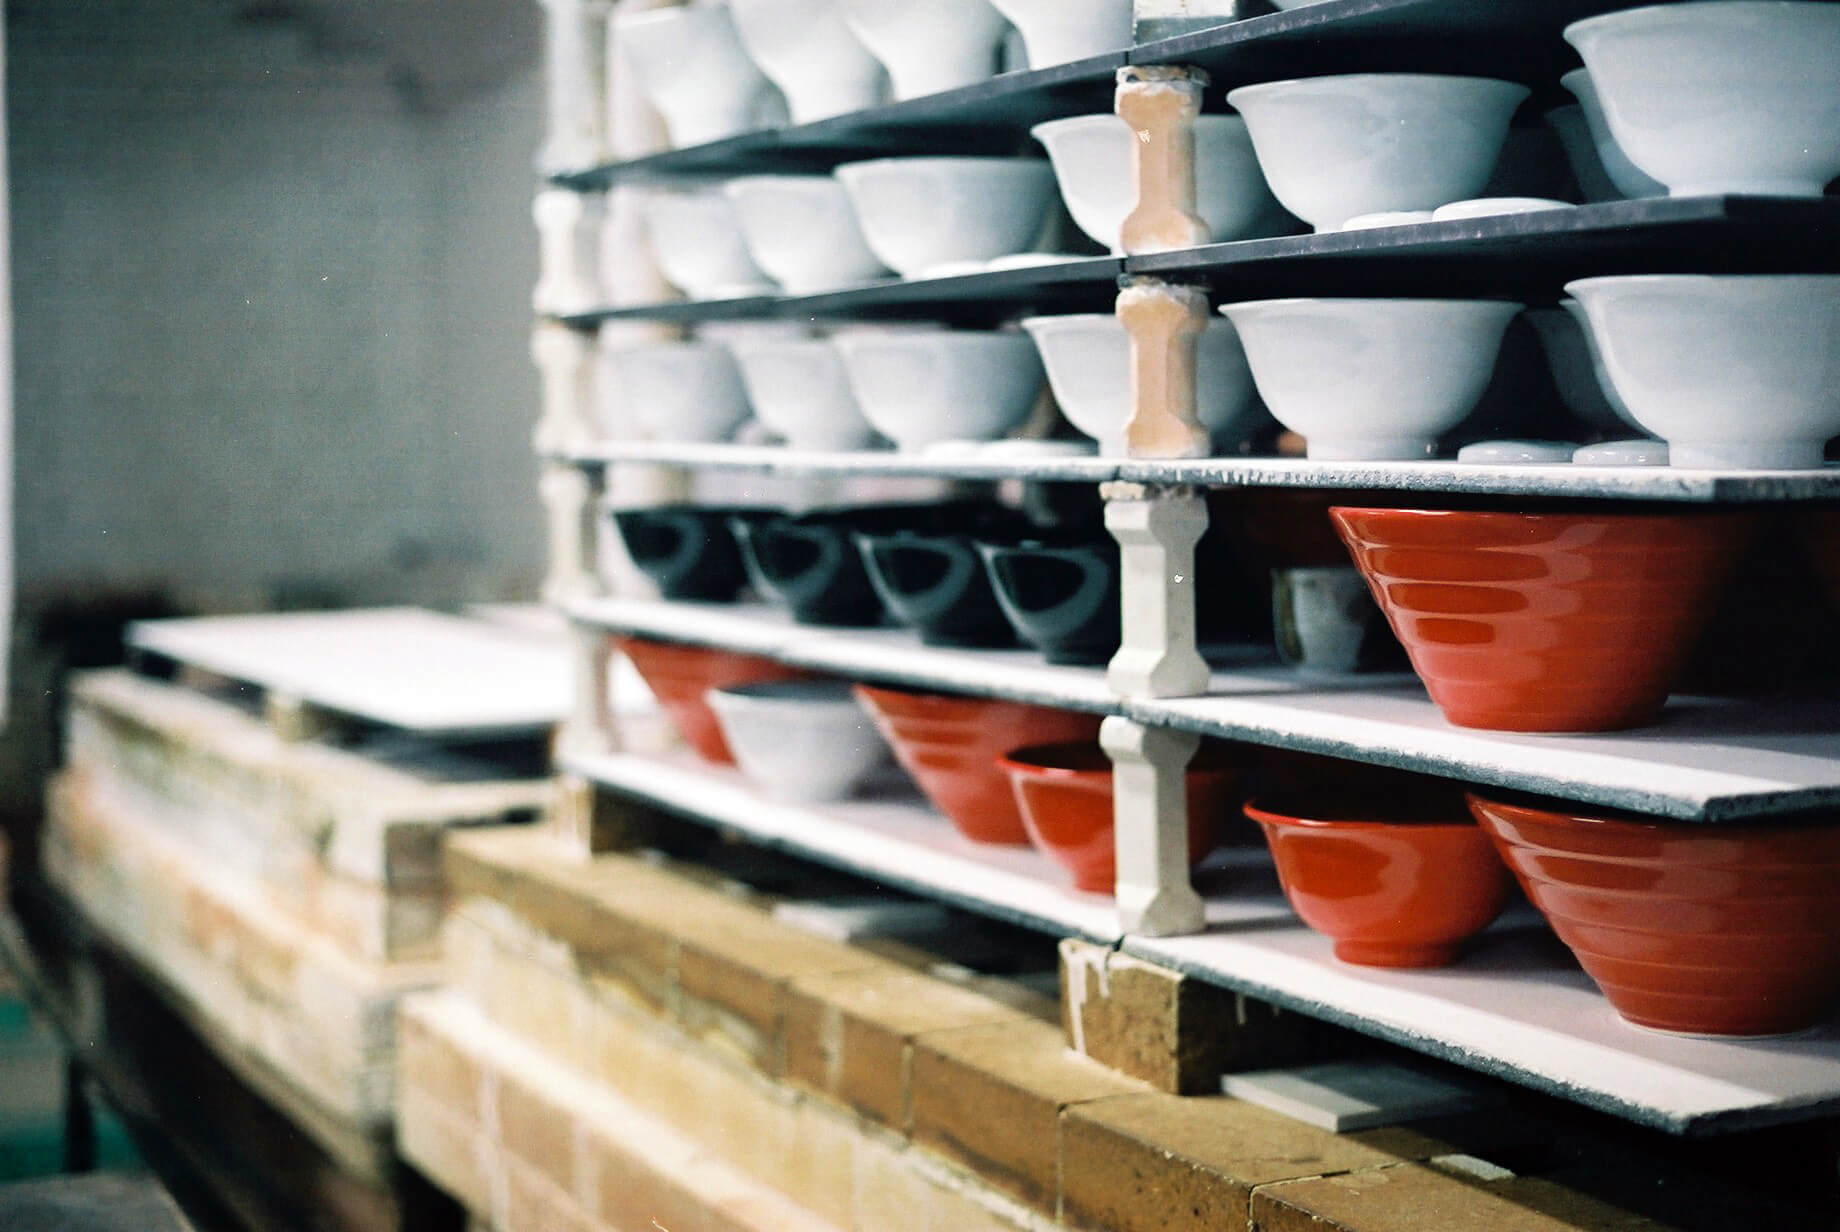 一風堂 IPPUDO's red and white bowls, and the origin of their porcelain